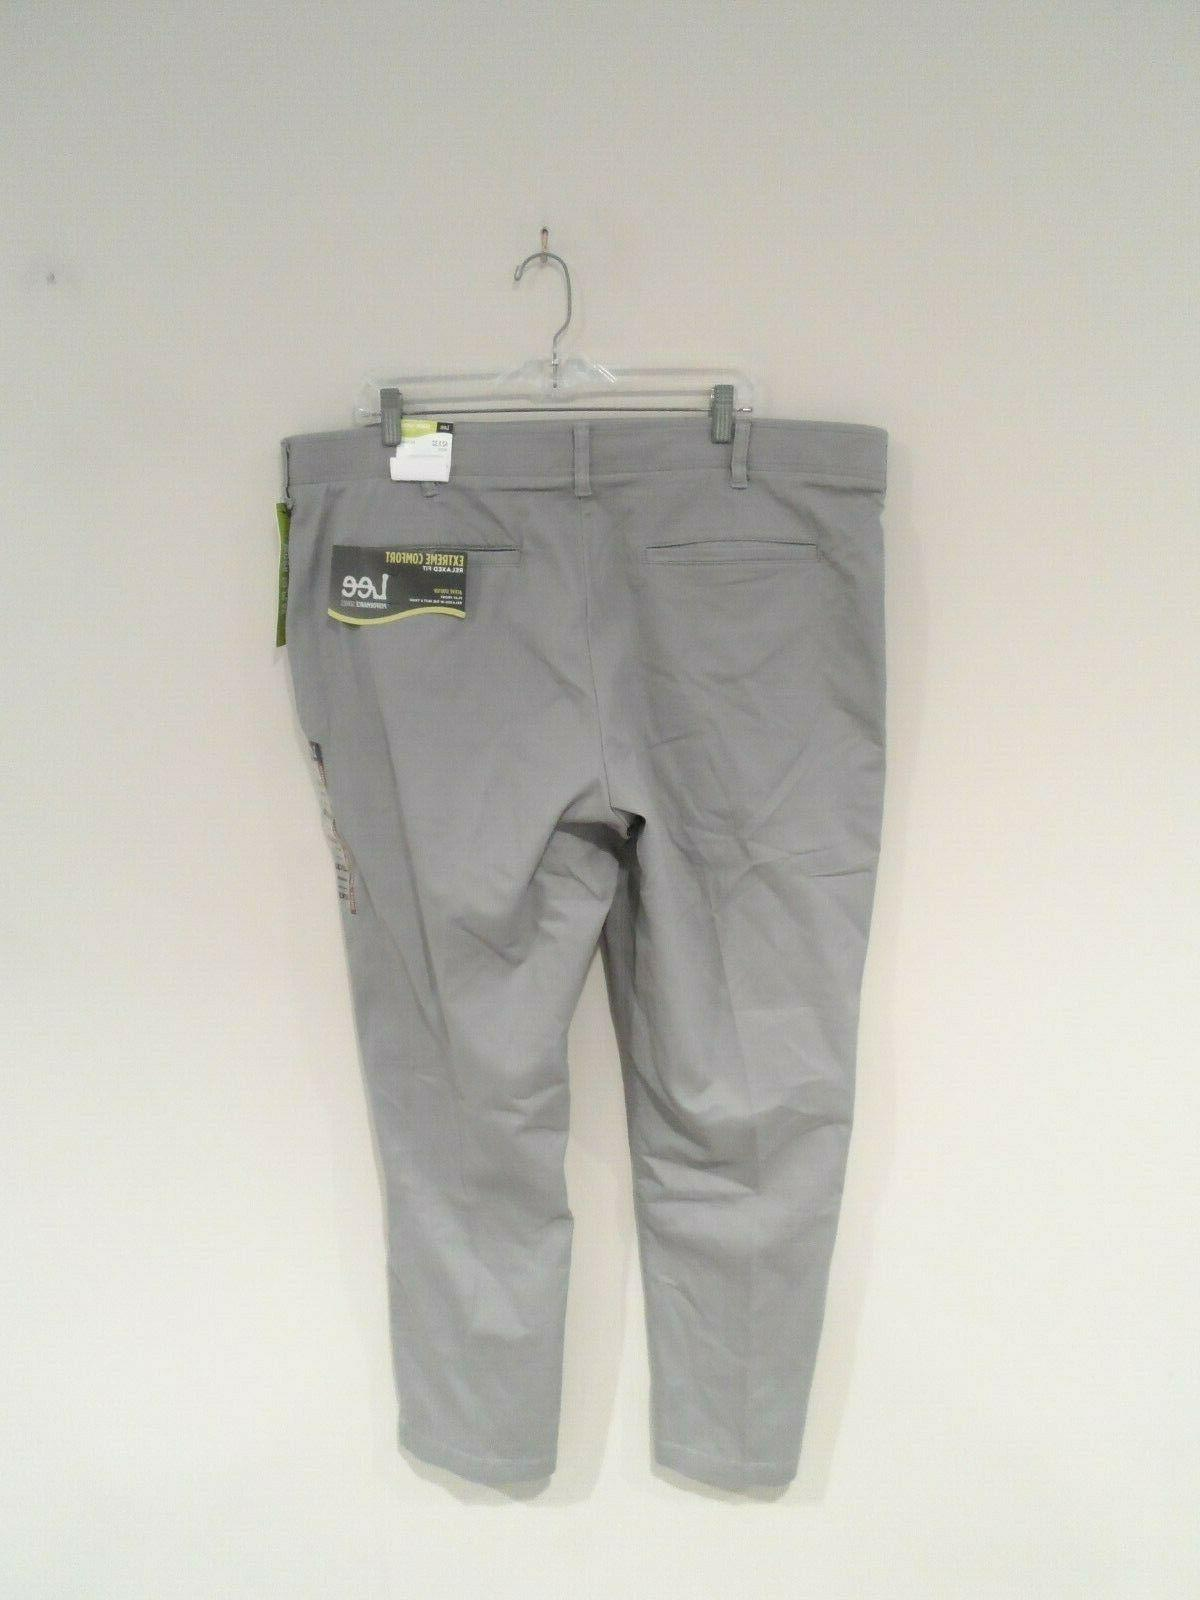 NEW Men's Comfort Pants Size Relaxed Fit 4276506